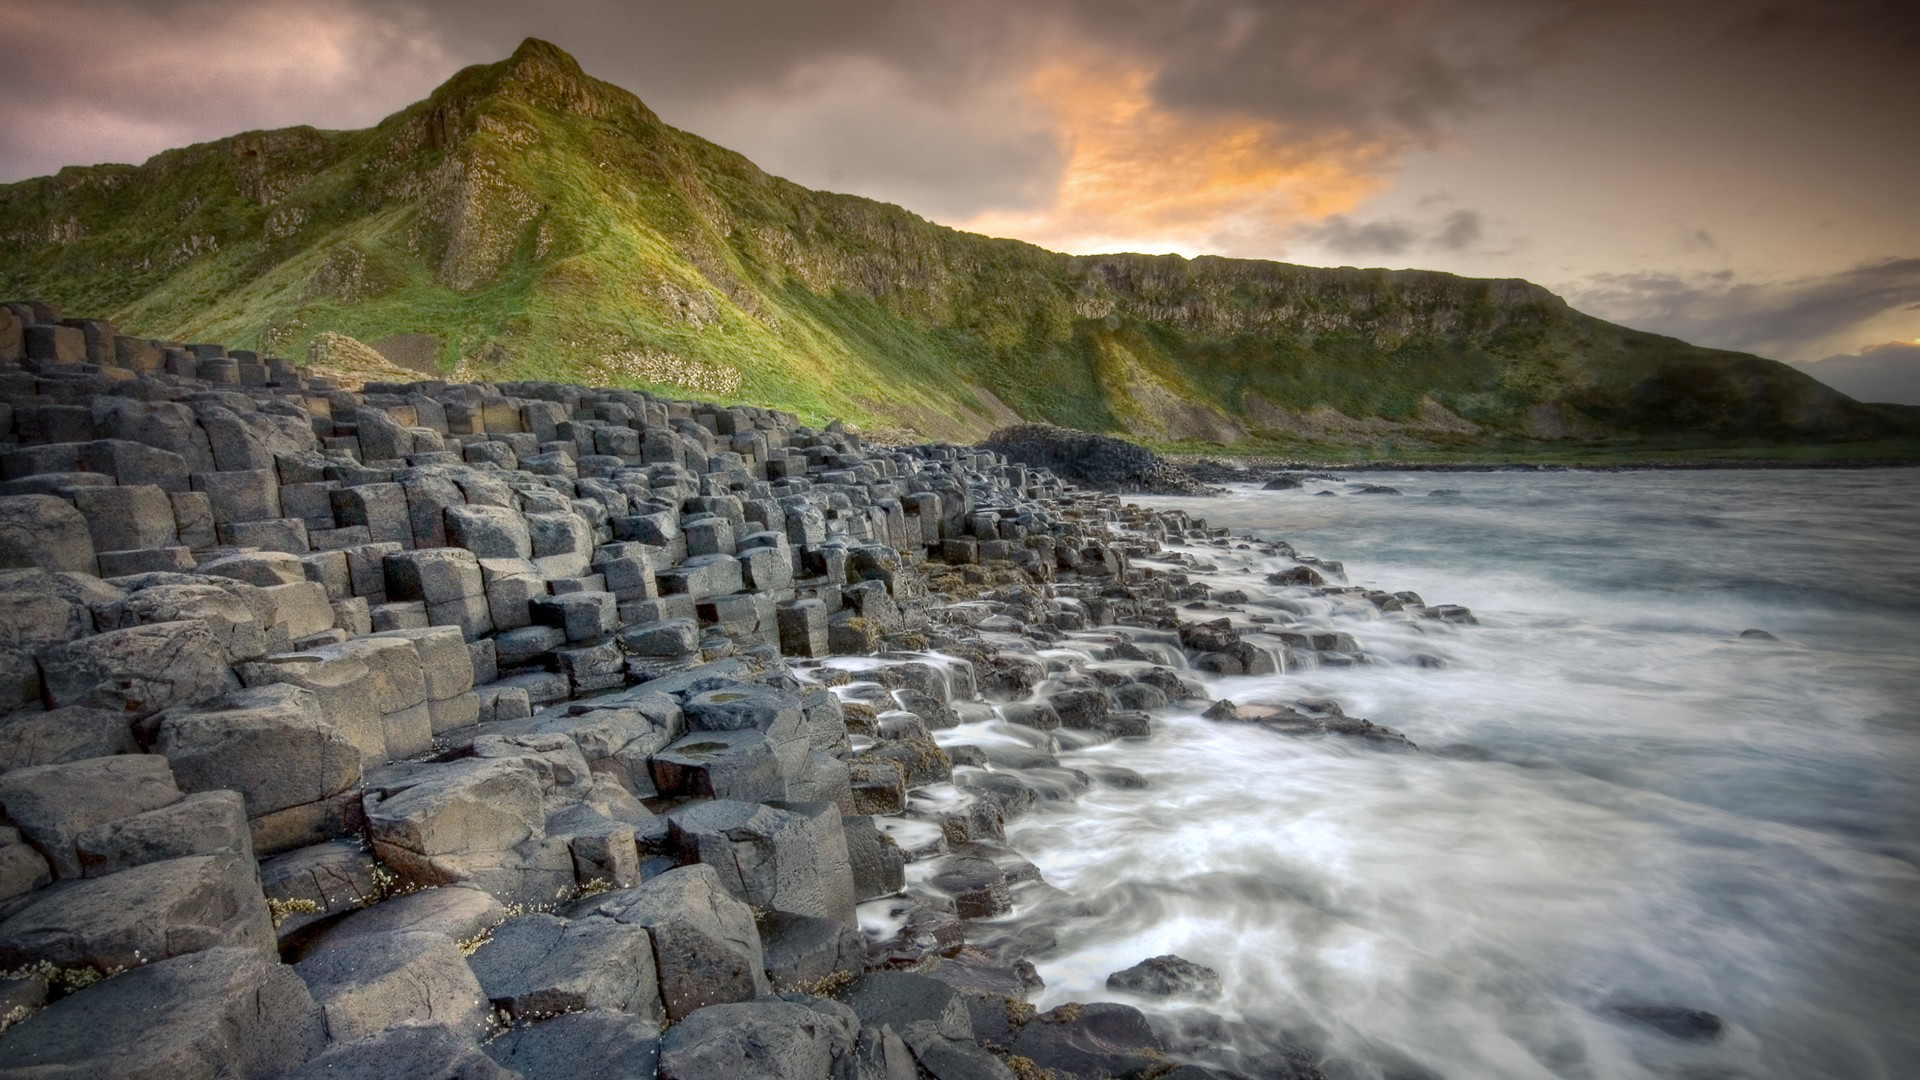 Giants Causeway in Ireland awesome landscape 1920x1080 1920x1080